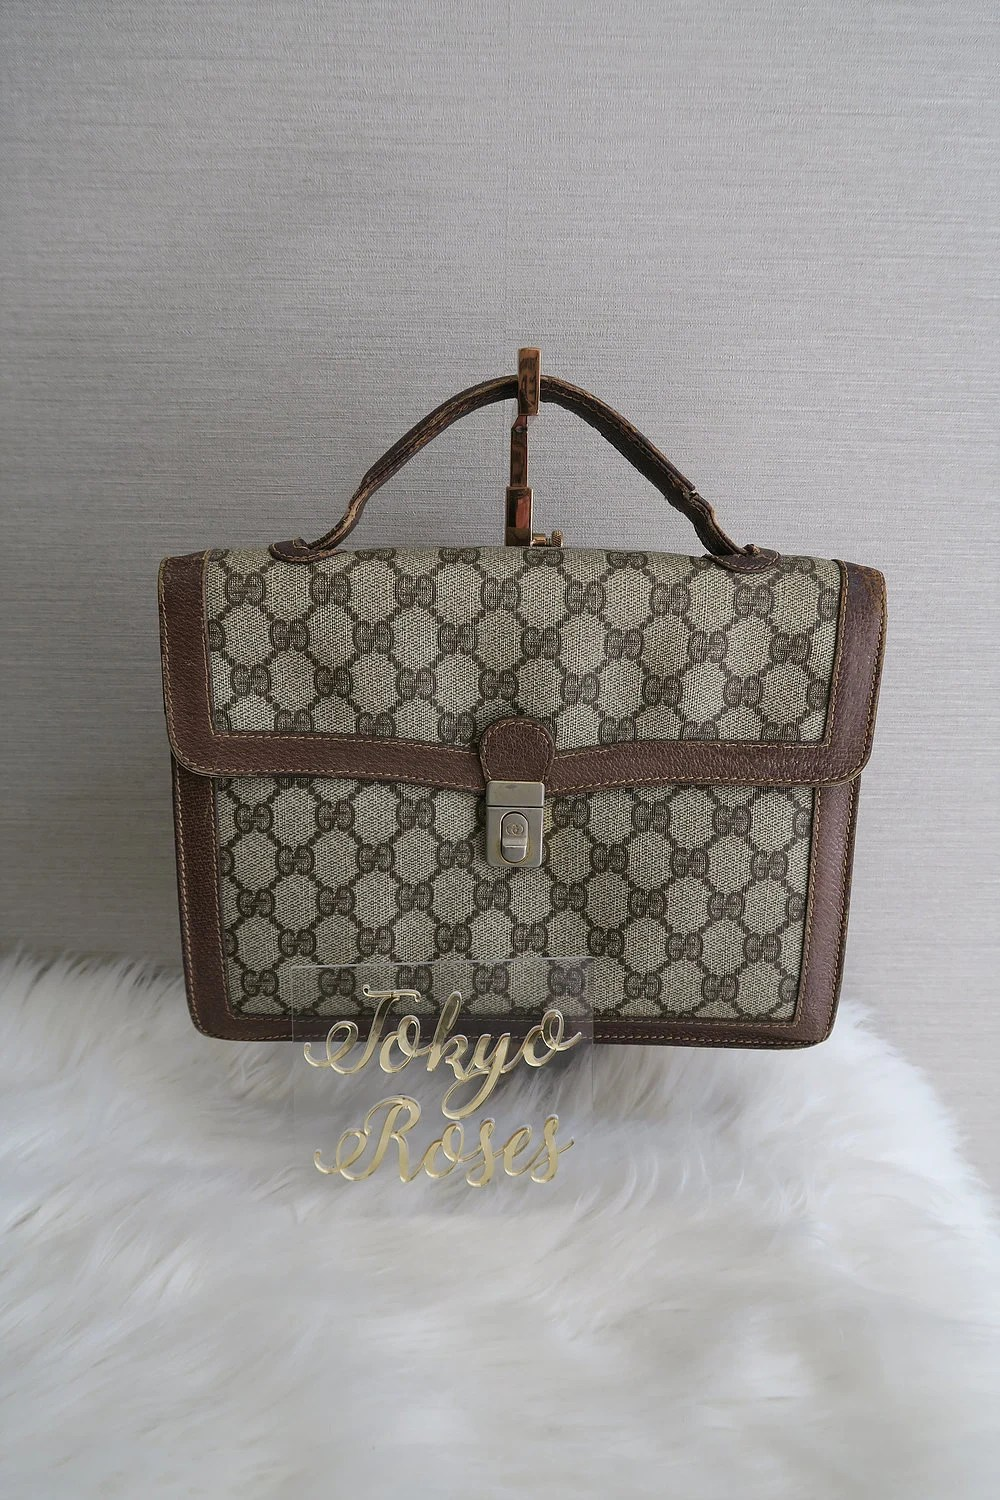 Etsy Vintage Gucci Vintage Gucci Gg Monogram Canvas Leather Business Bag Briefcase Handbag